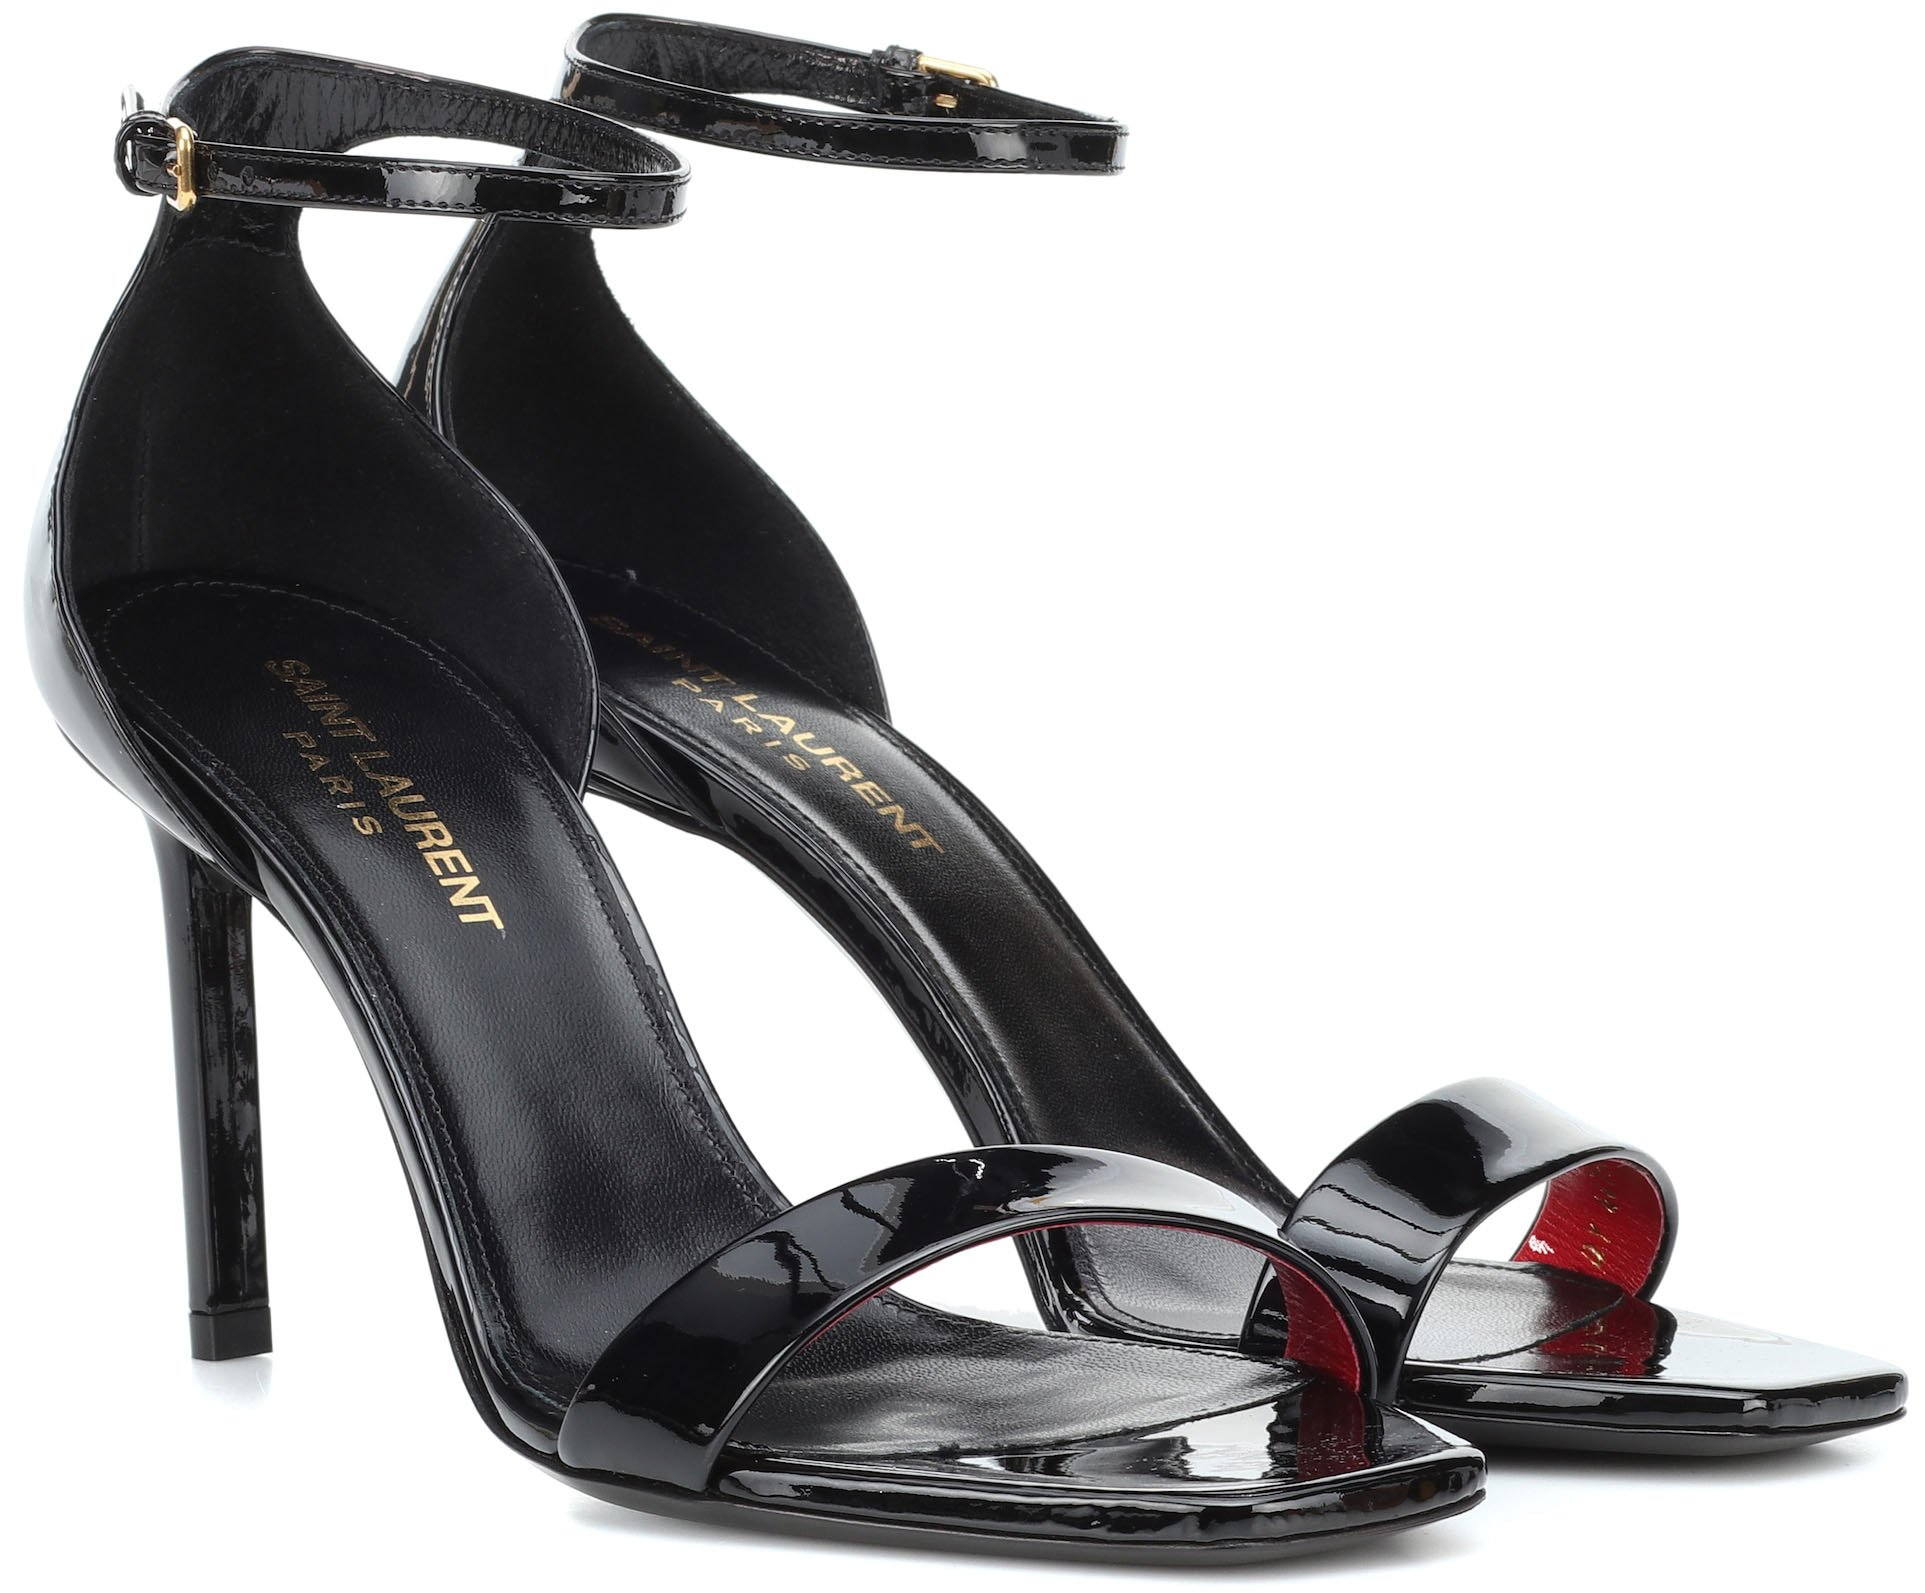 Saint Laurent's Amber heels have chic open square toes, slim ankle straps, and covered heels